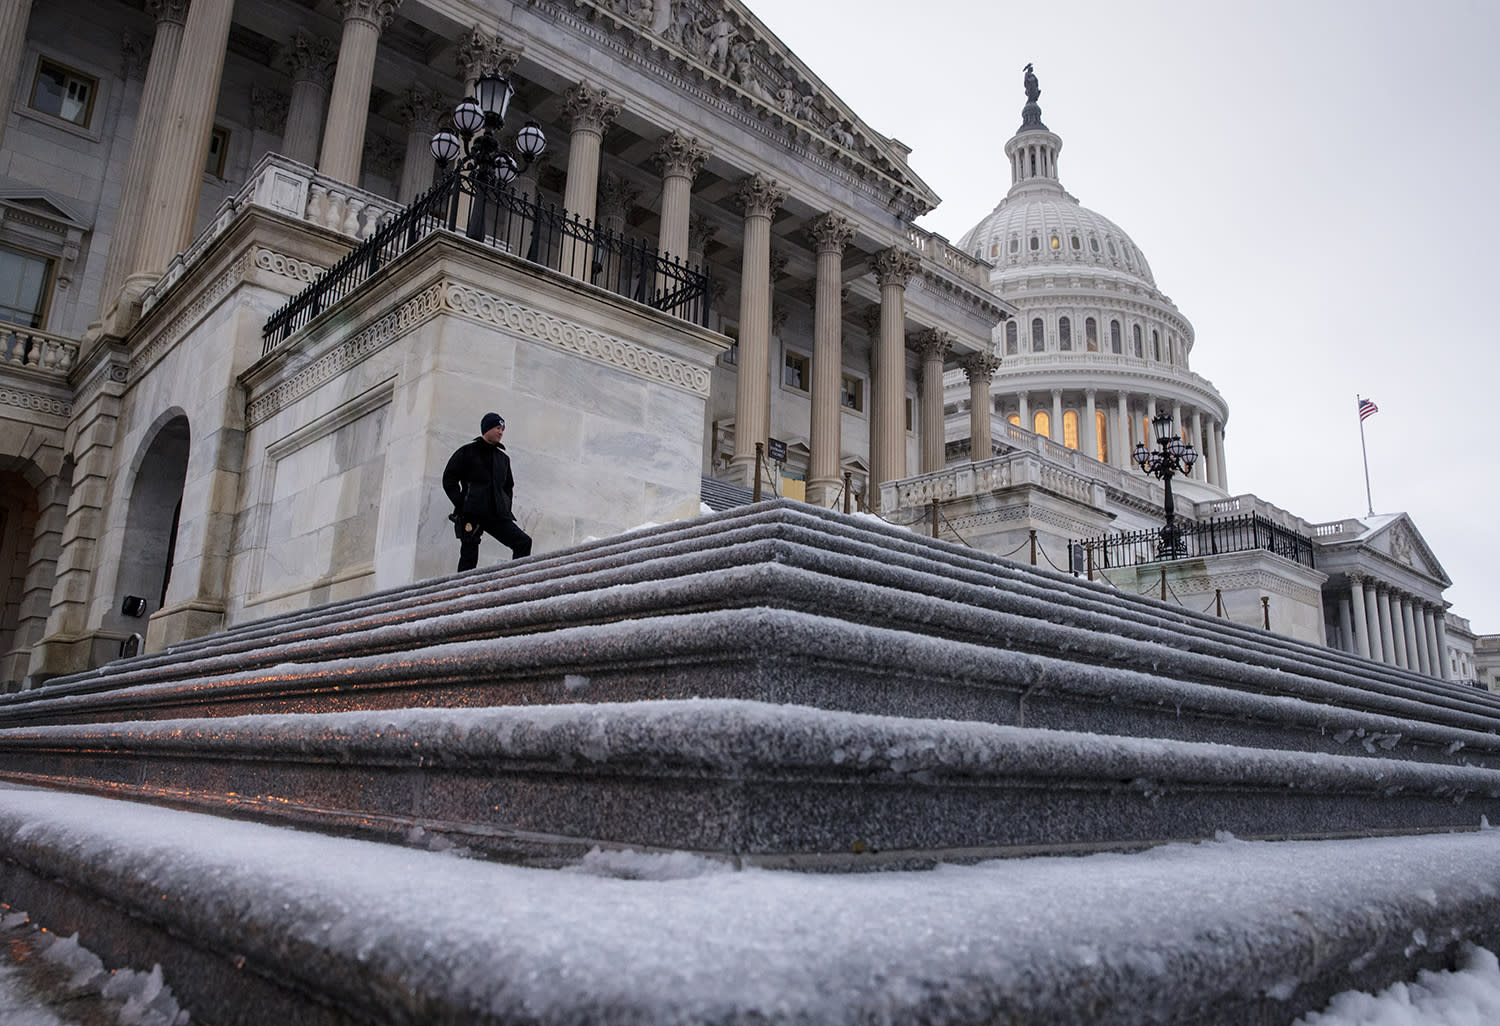 <p>A police officer stands at his post on the steps of the House of Representatives on Capitol Hill in Washington, Tuesday morning, March, 14, 2017, following an overnight snowfall. A late-season storm is dumping a messy mix of snow, sleet and rain on the mid-Atlantic, complicating travel, knocking out power and closing schools and government offices around the region. (J. Scott Applewhite/AP) </p>